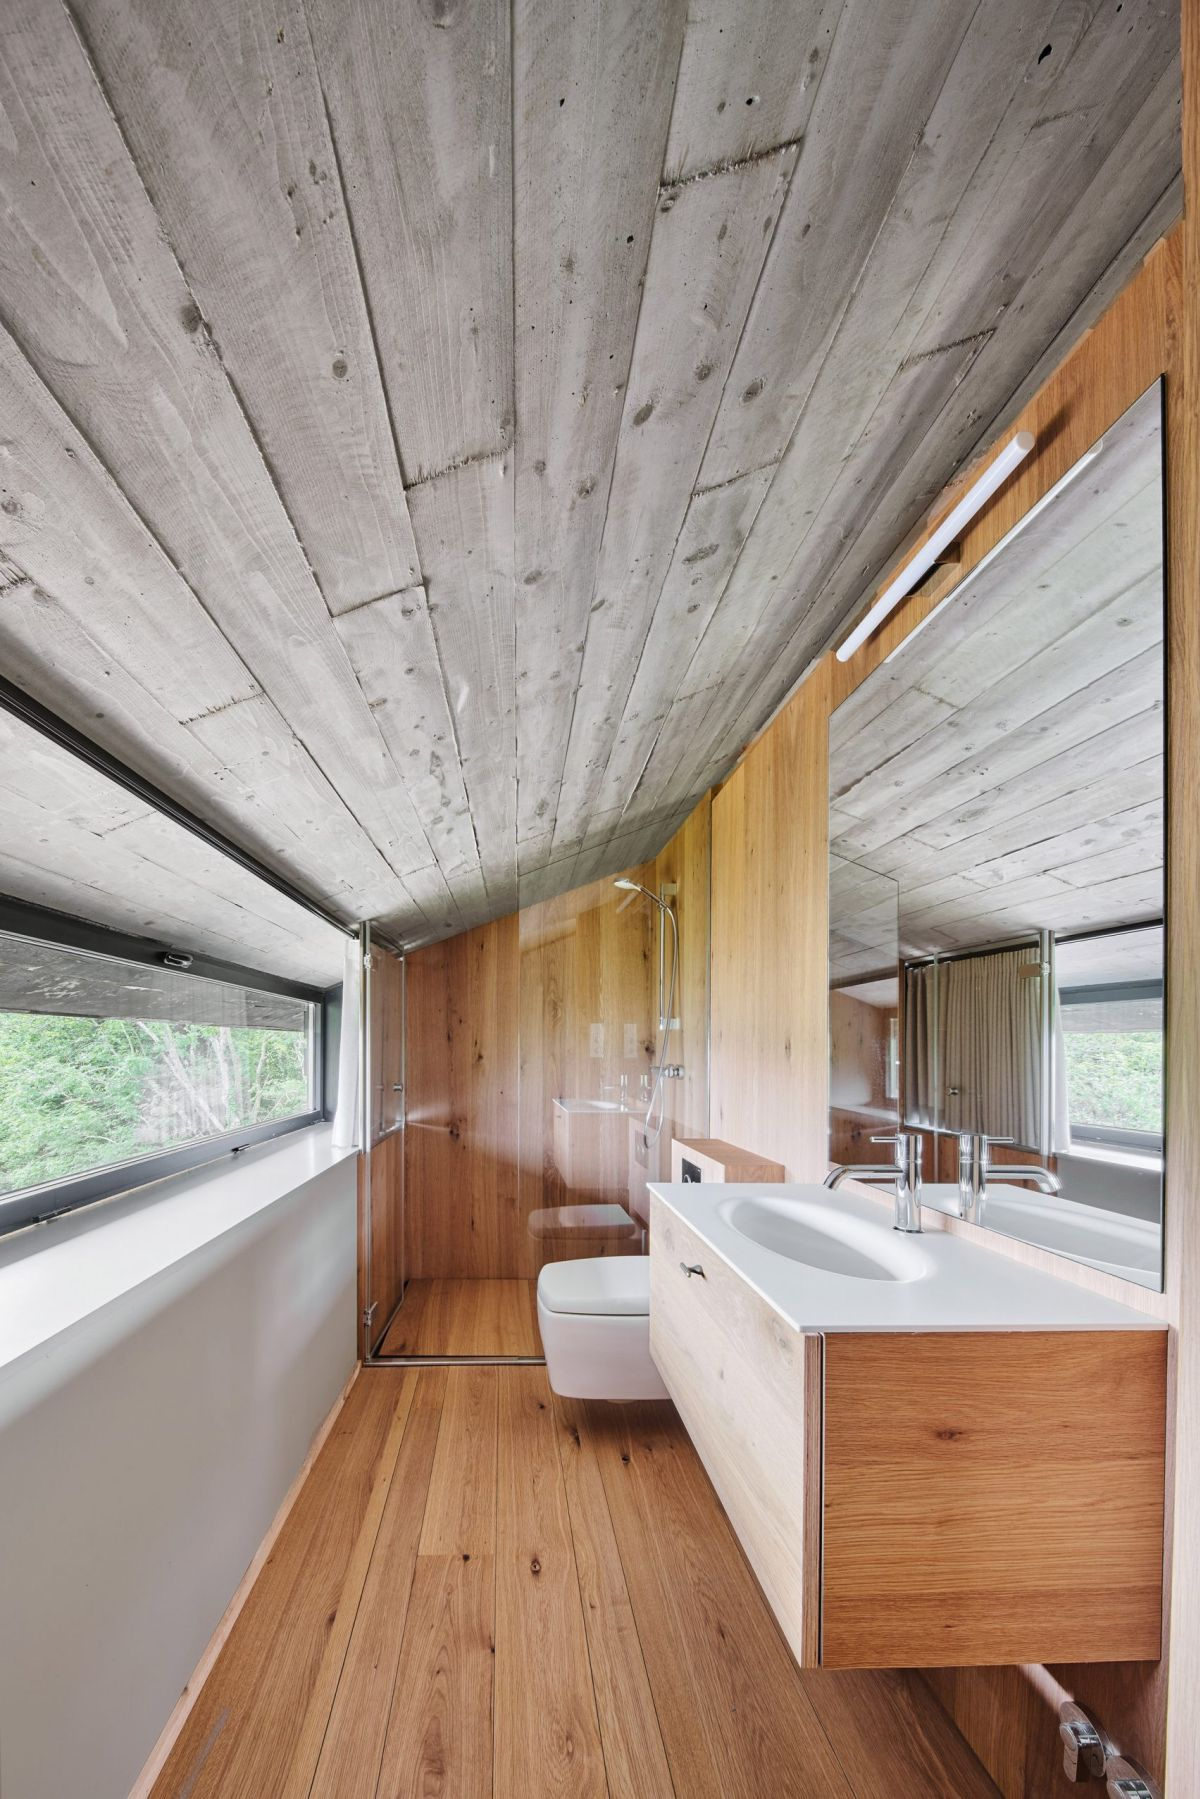 The combination of wood and concrete creates a balanced design and maintains a modern appearance